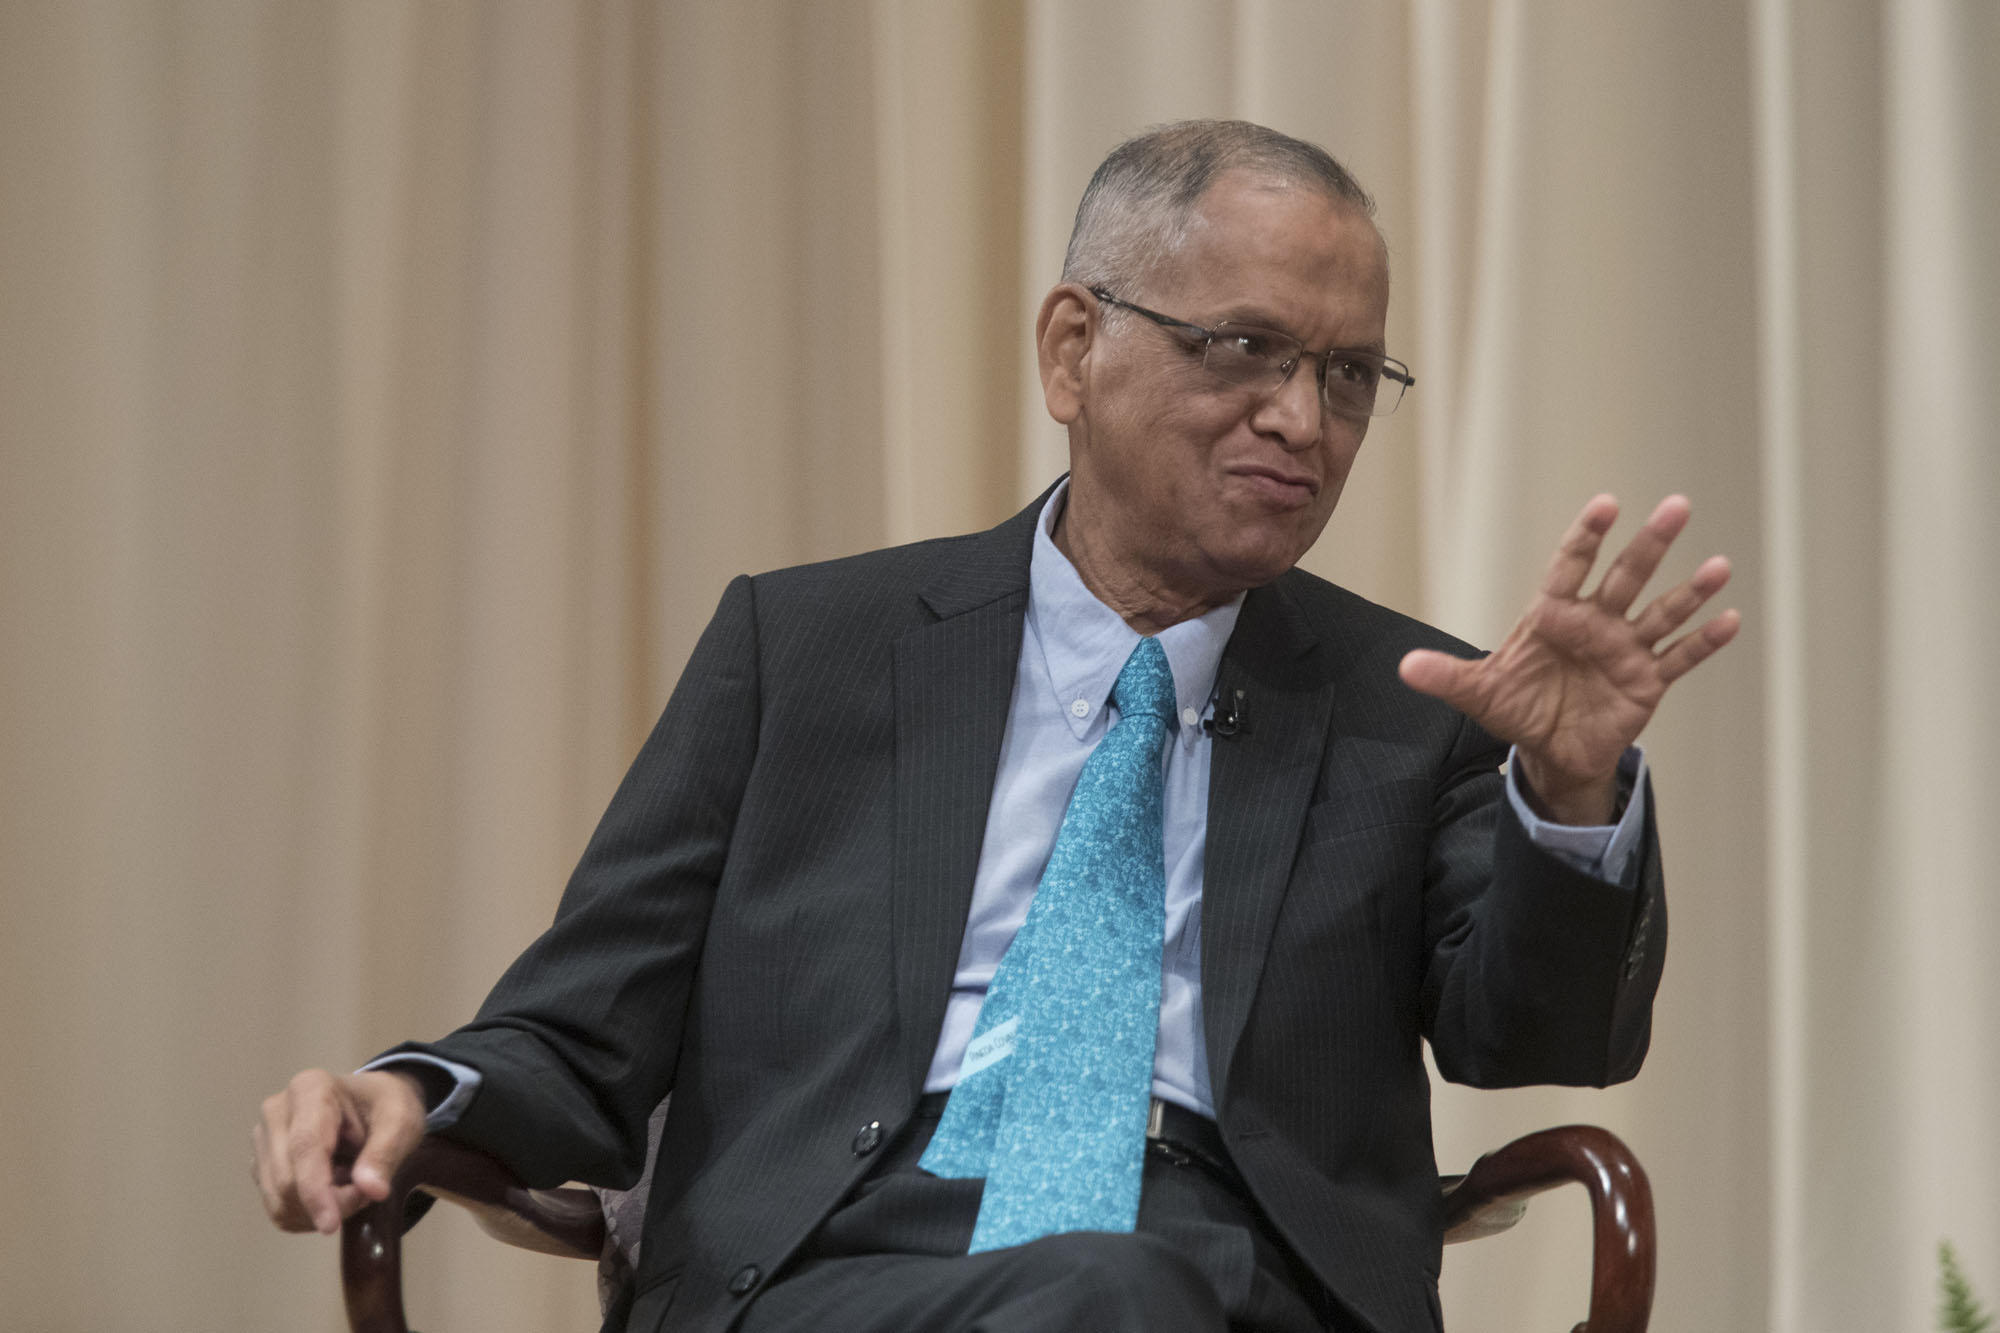 Infosys founder and former CEO and Chairman Narayana Murthy spoke Wednesday at the Darden School of Business. (Photo by Dan Addison, University Communications)